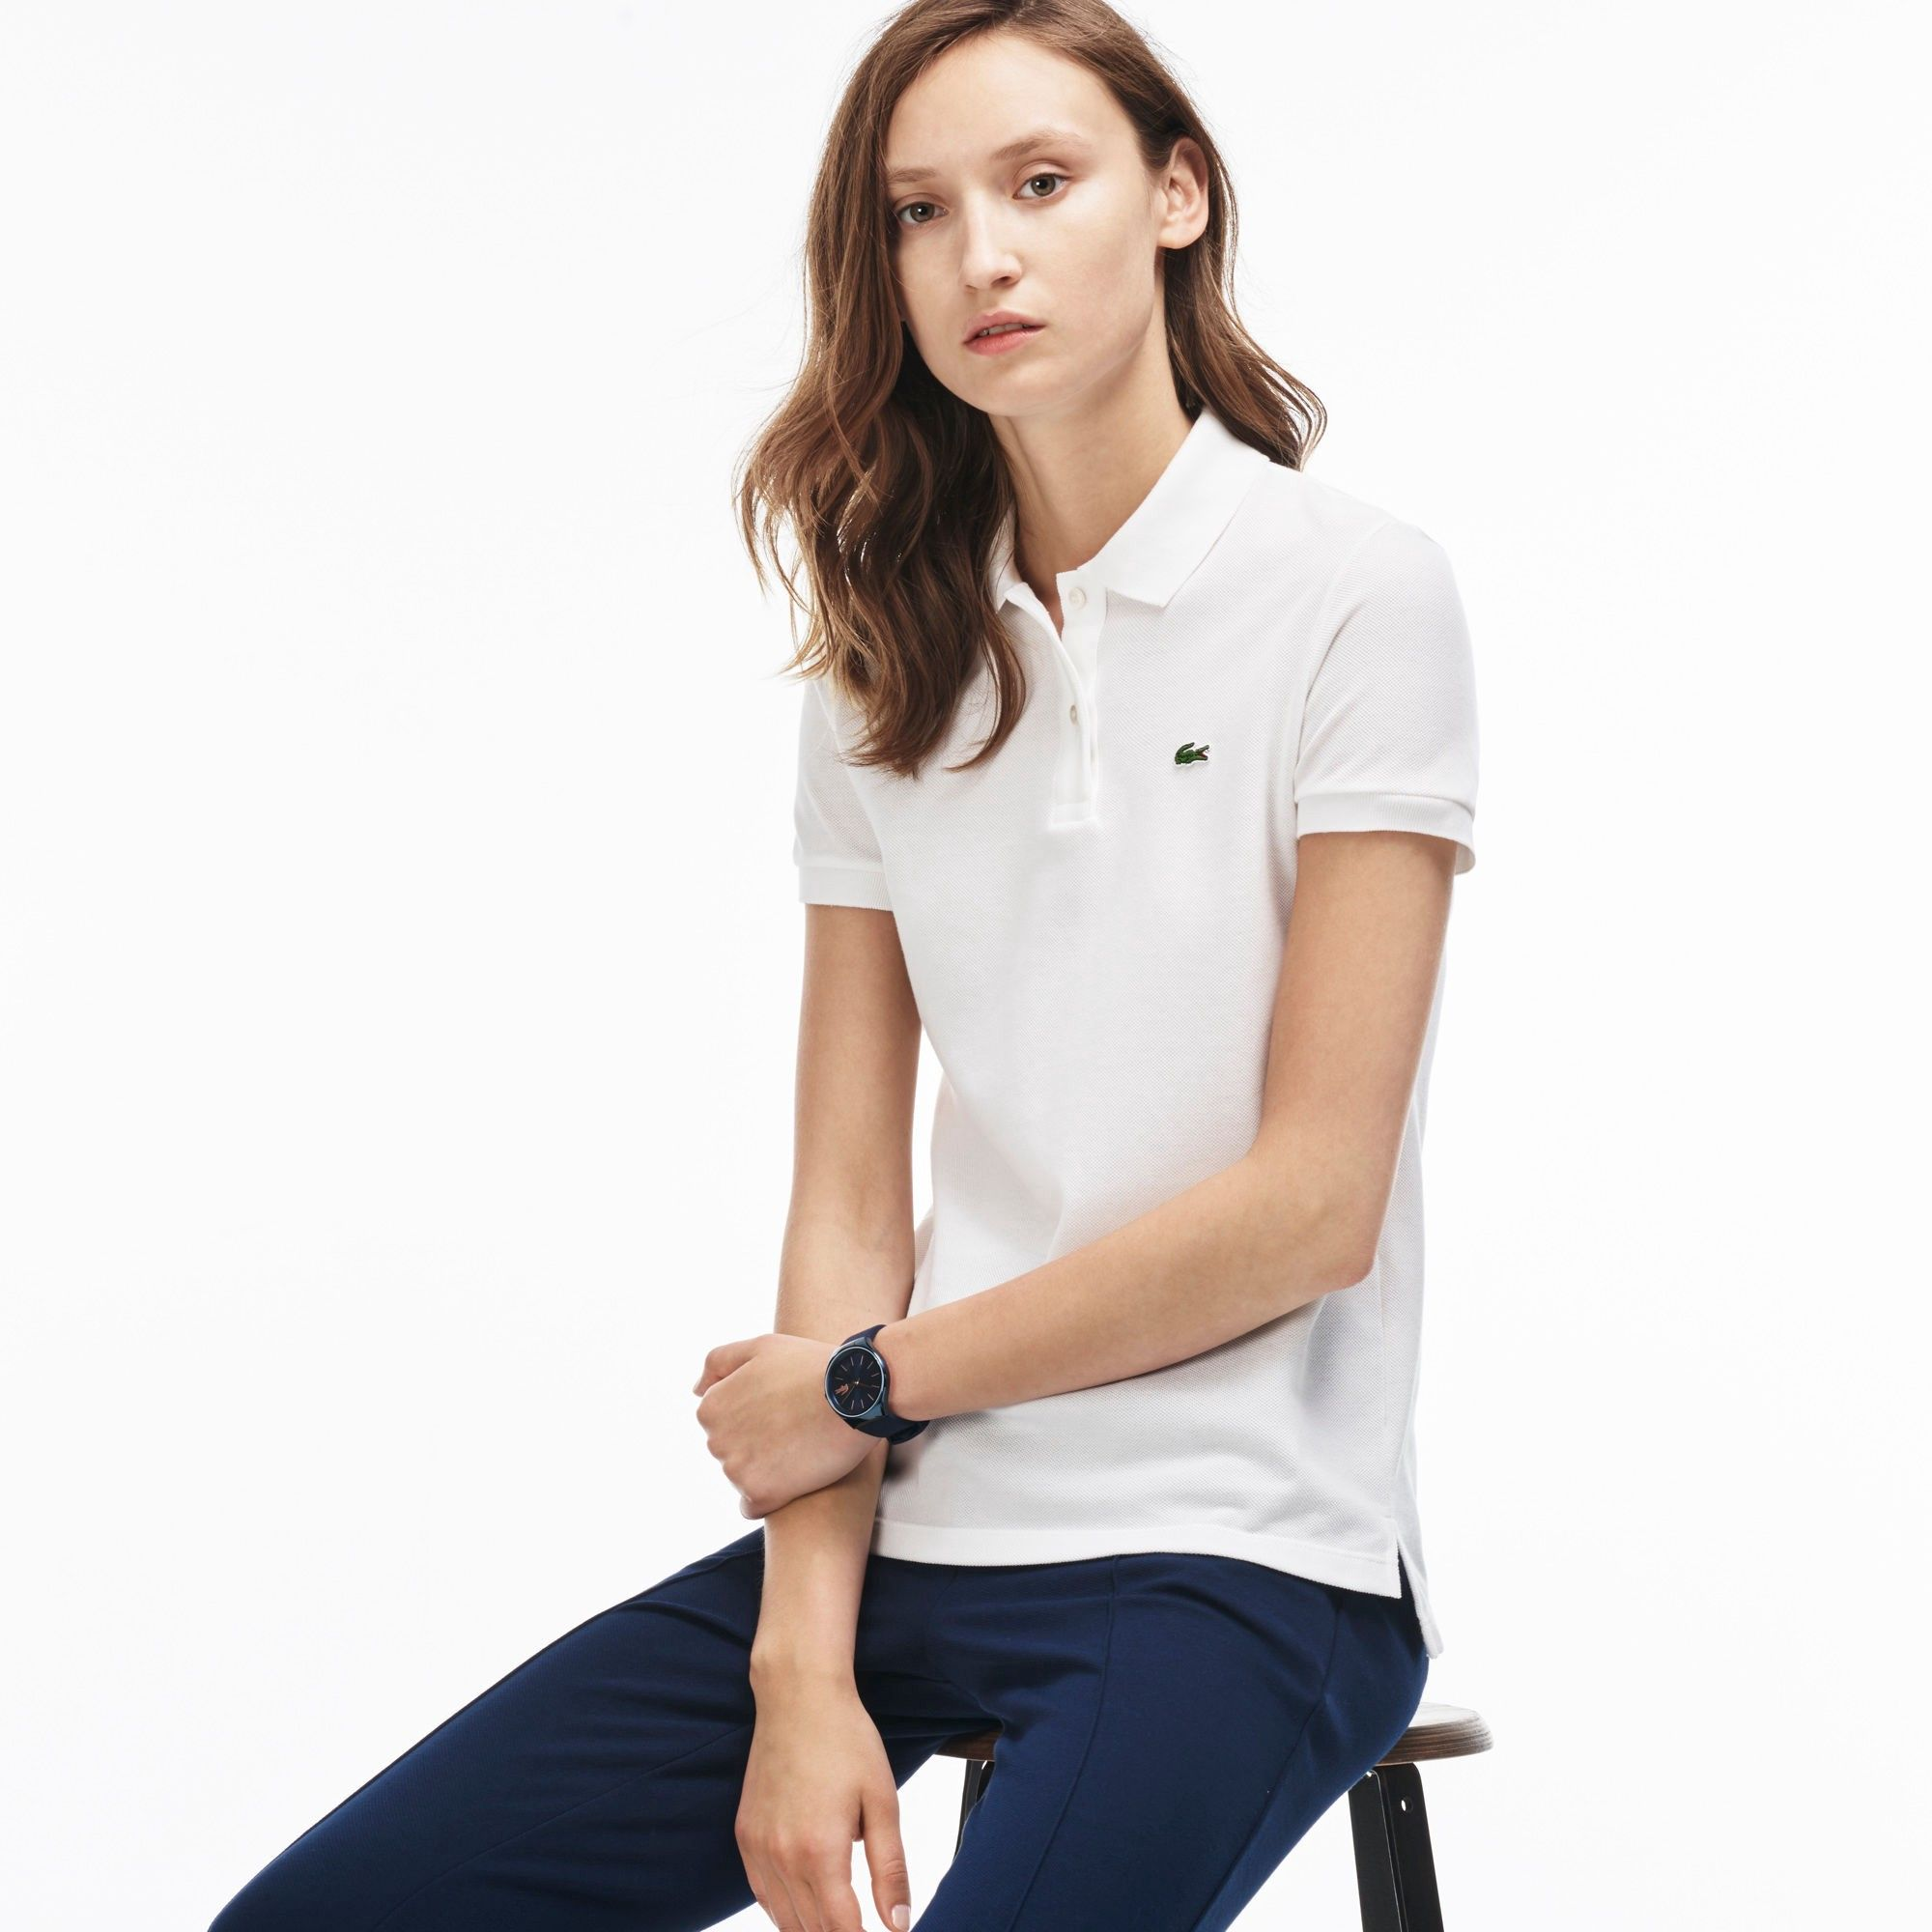 lacoste womens polo shirts on sale Cheaper Than Retail Price> Buy ...